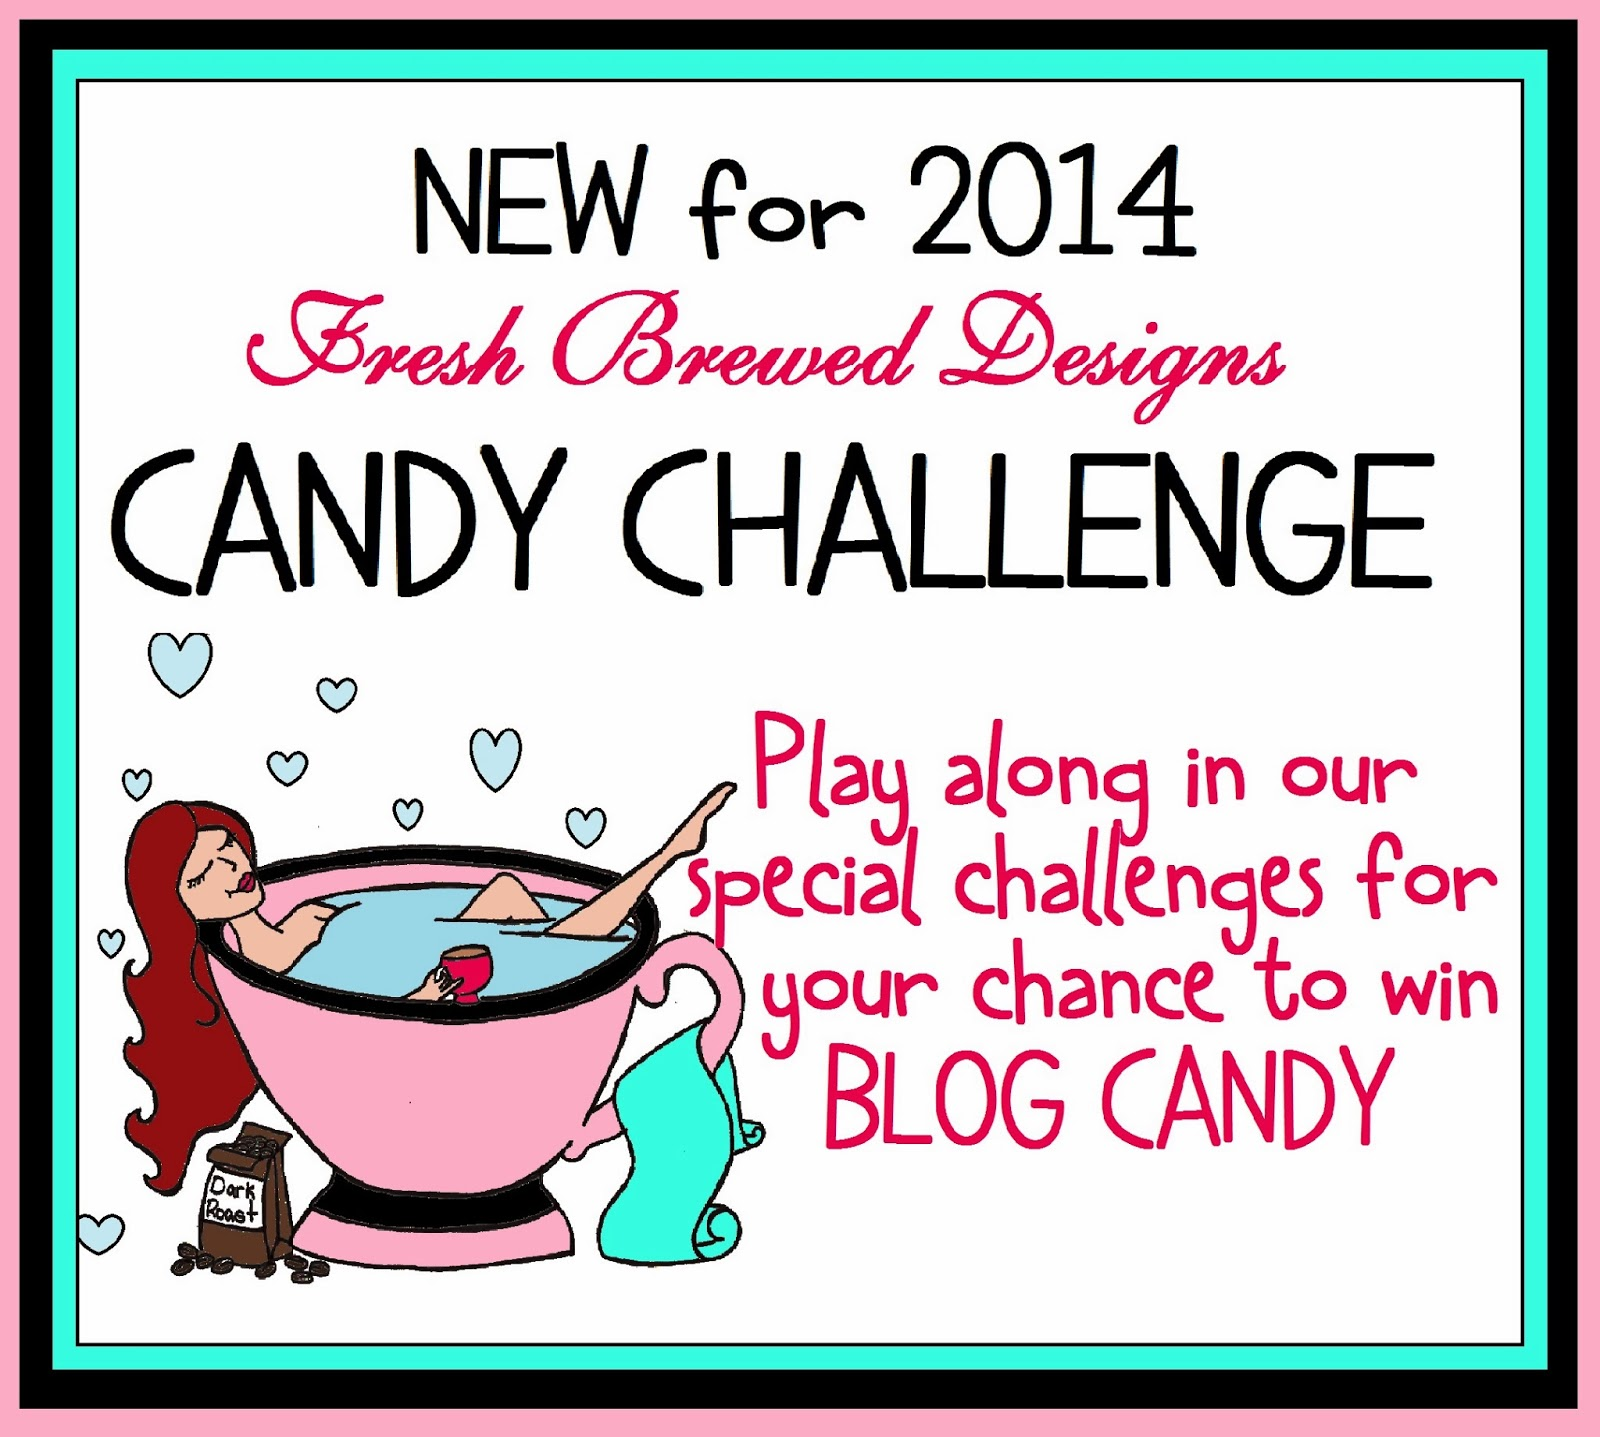 http://freshbreweddesigns.blogspot.ca/2014/02/feb-blog-candy-link-up.html